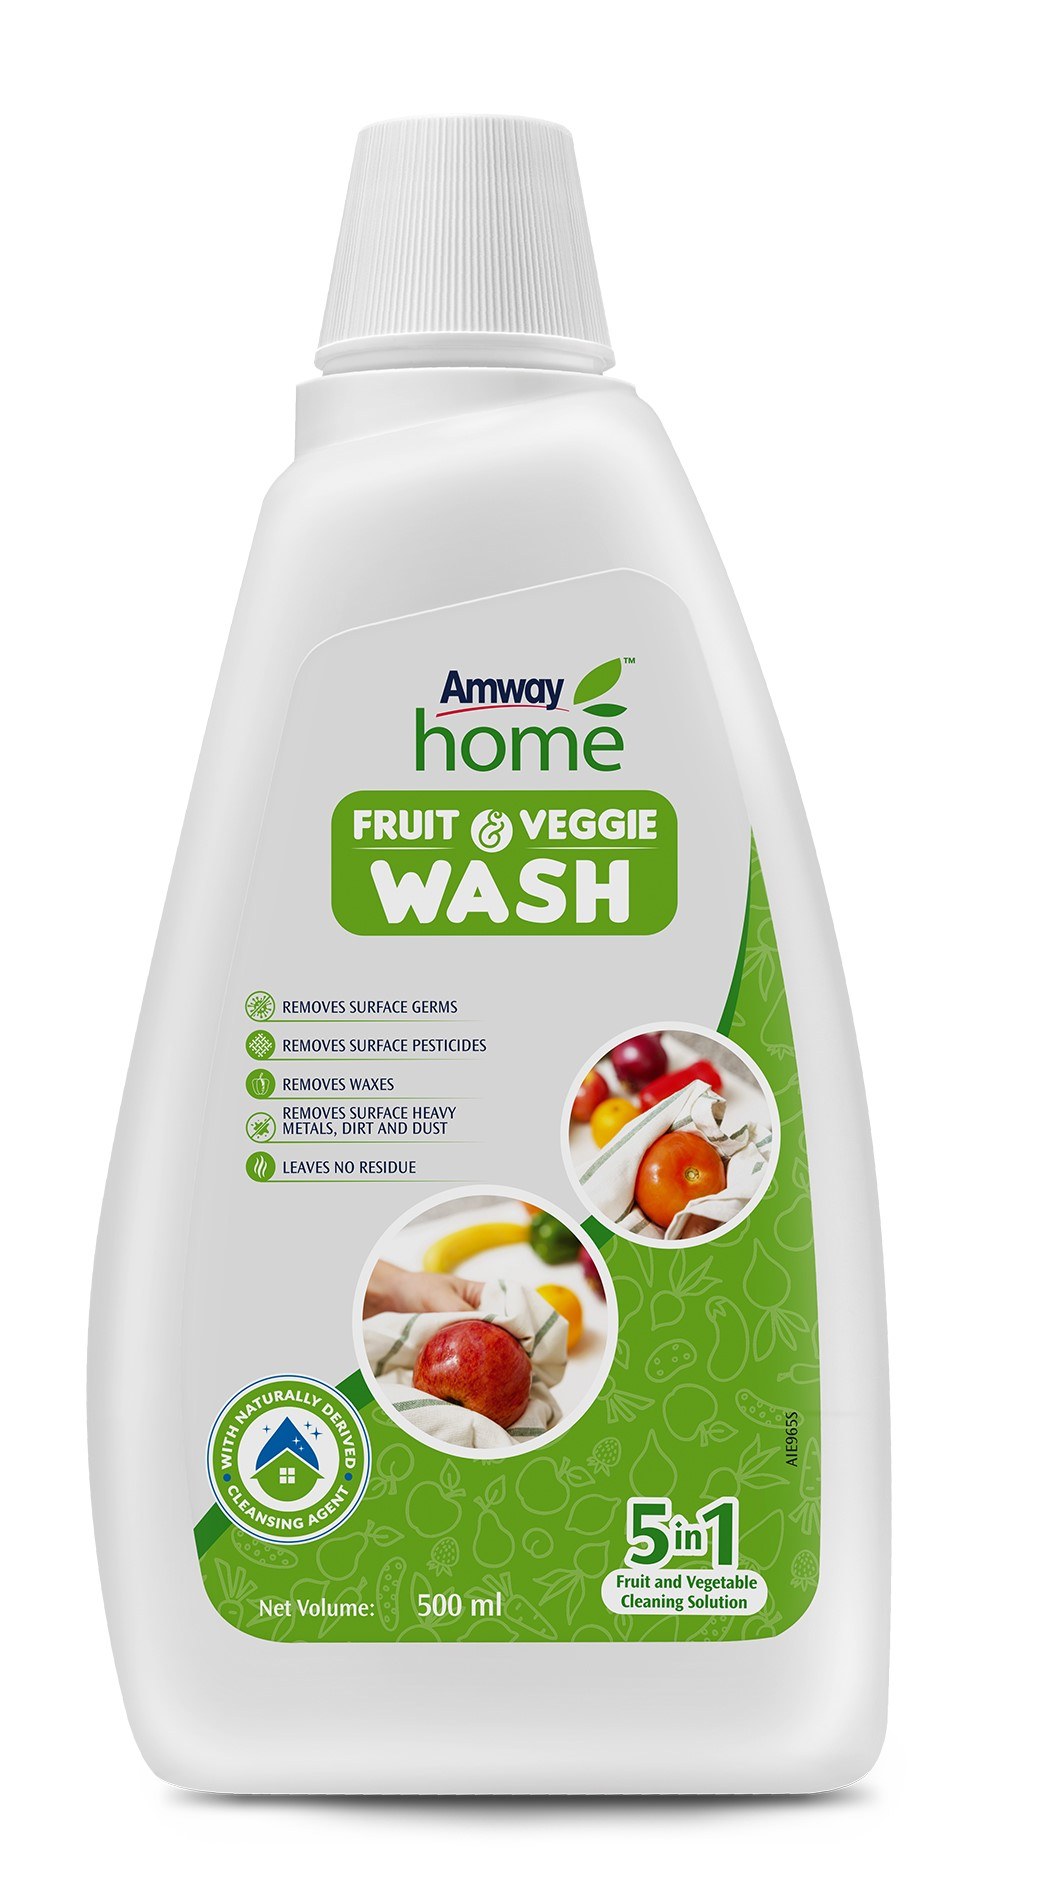 Amway Forays into Vegetable and Fruit Hygiene Category